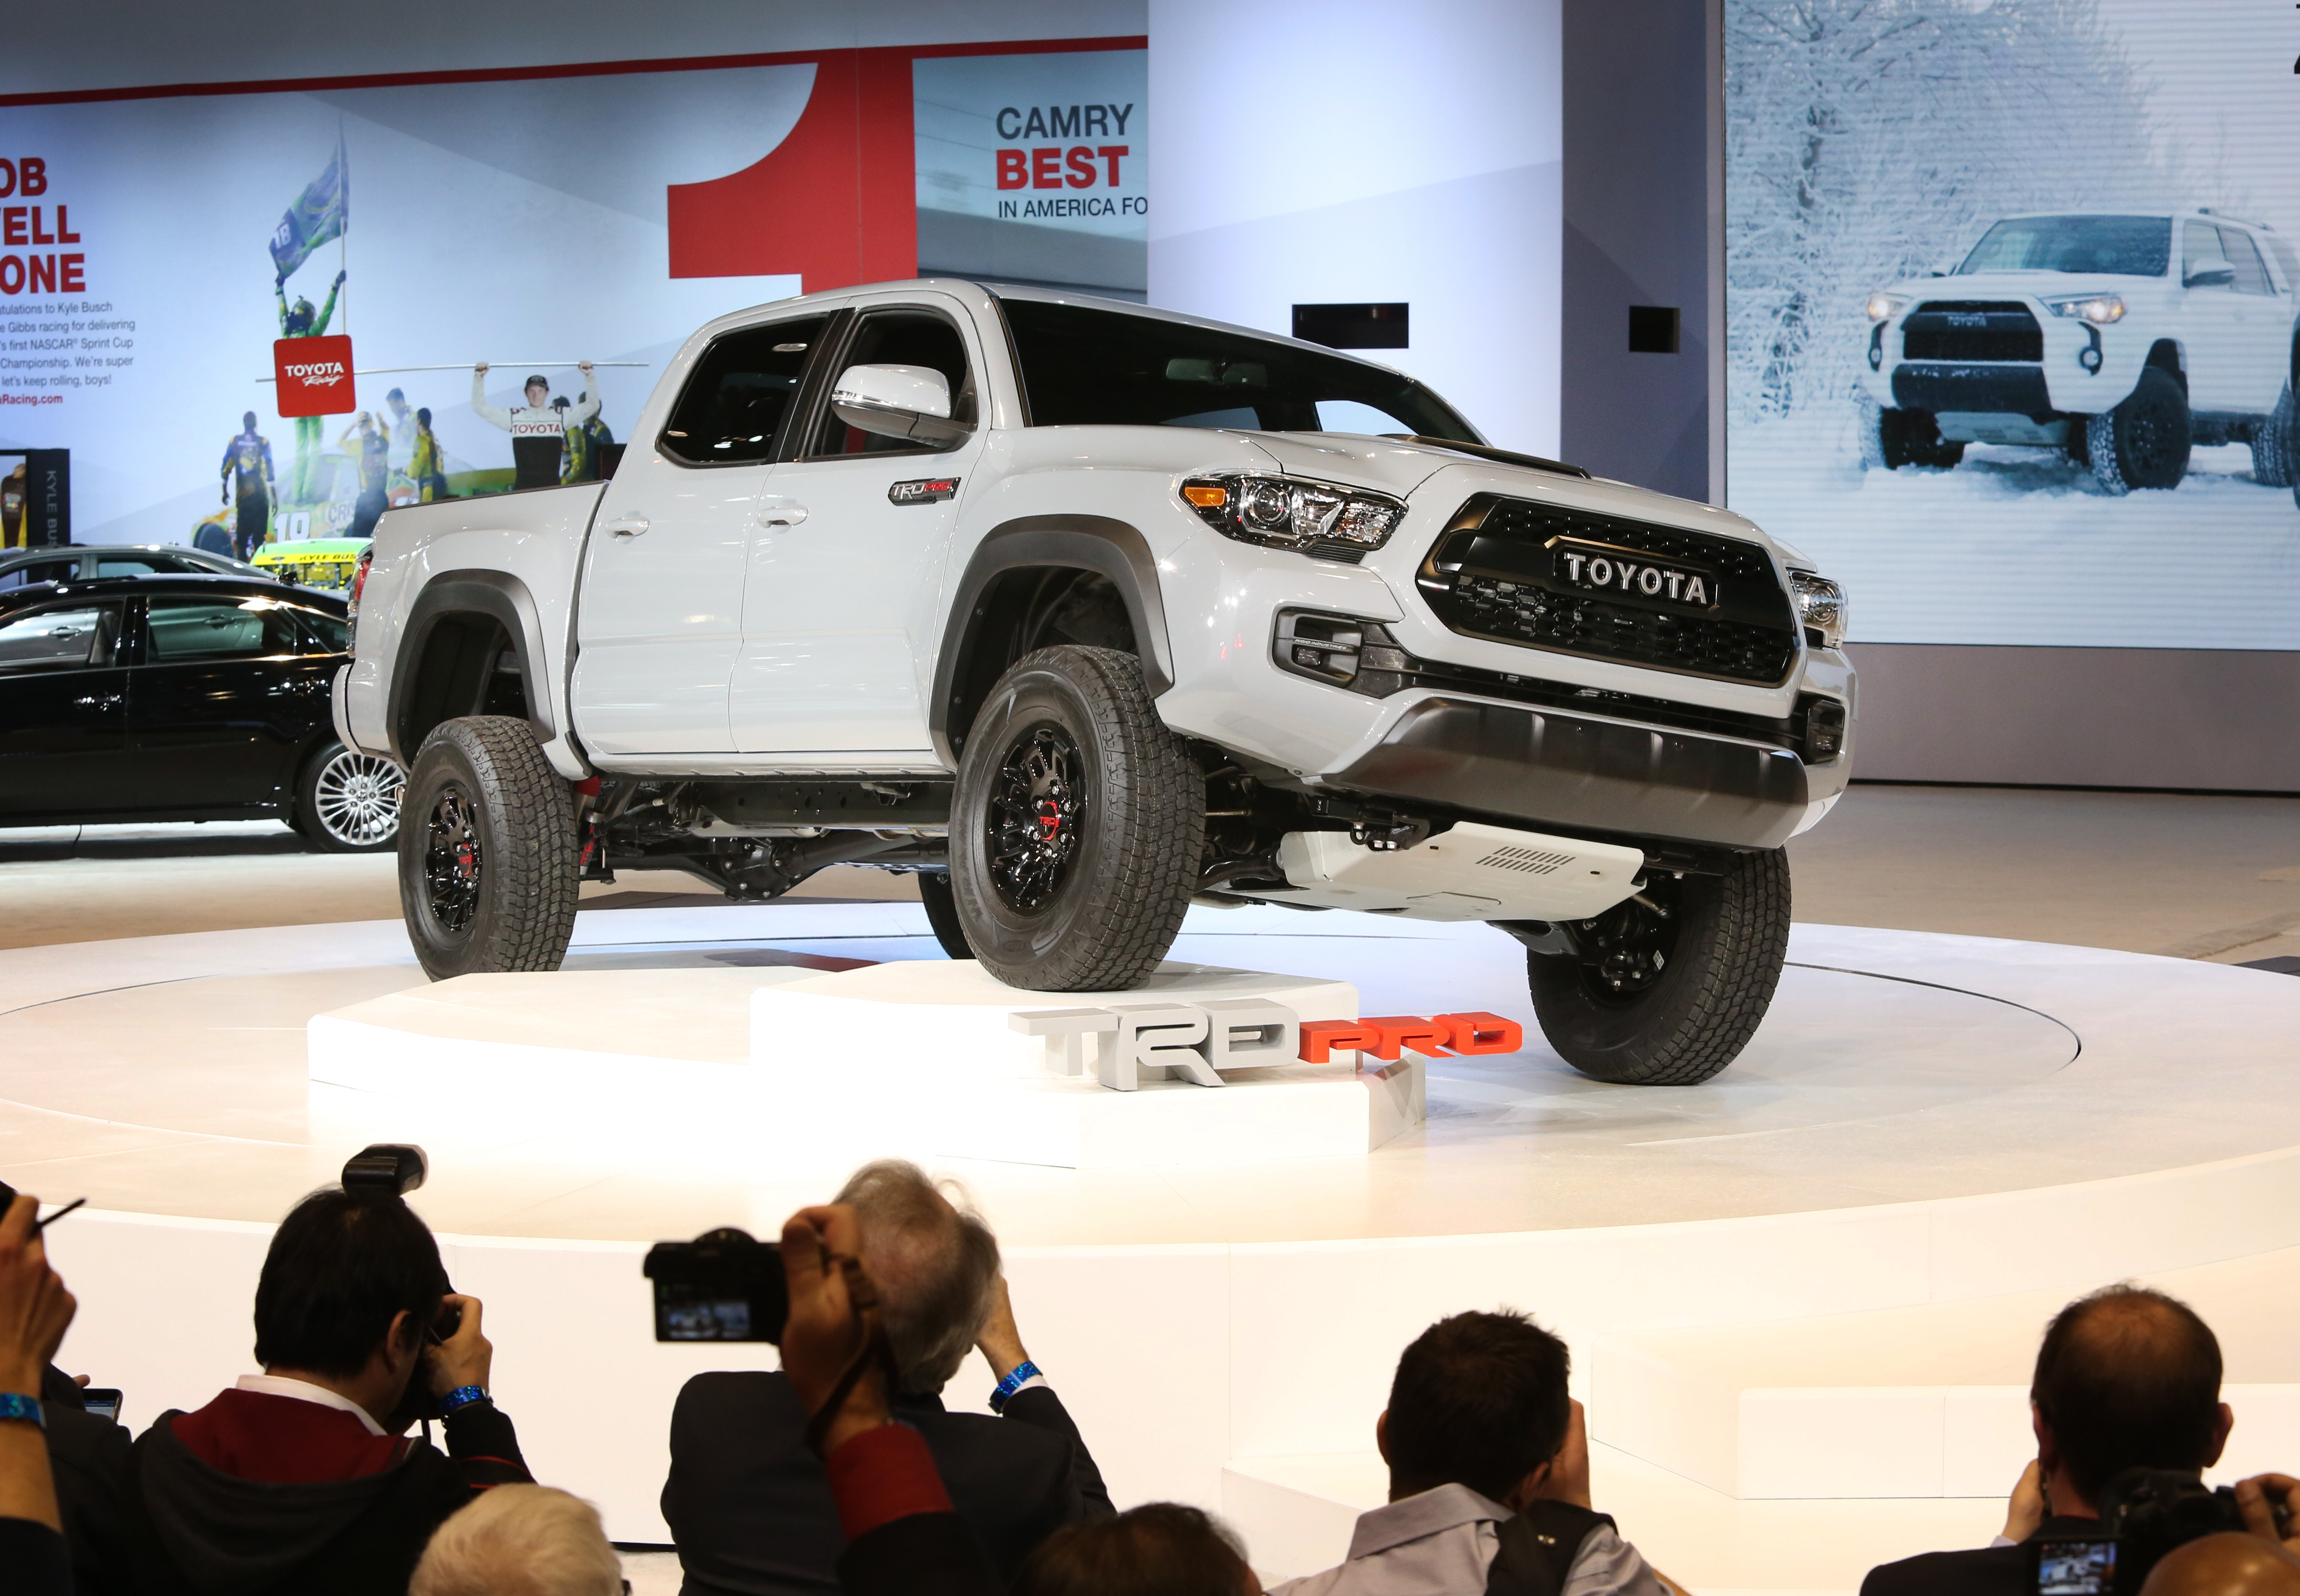 chicago 2016 la toyota tacoma trd pro 2017 refresca las tradiciones todoterreno de toyota. Black Bedroom Furniture Sets. Home Design Ideas